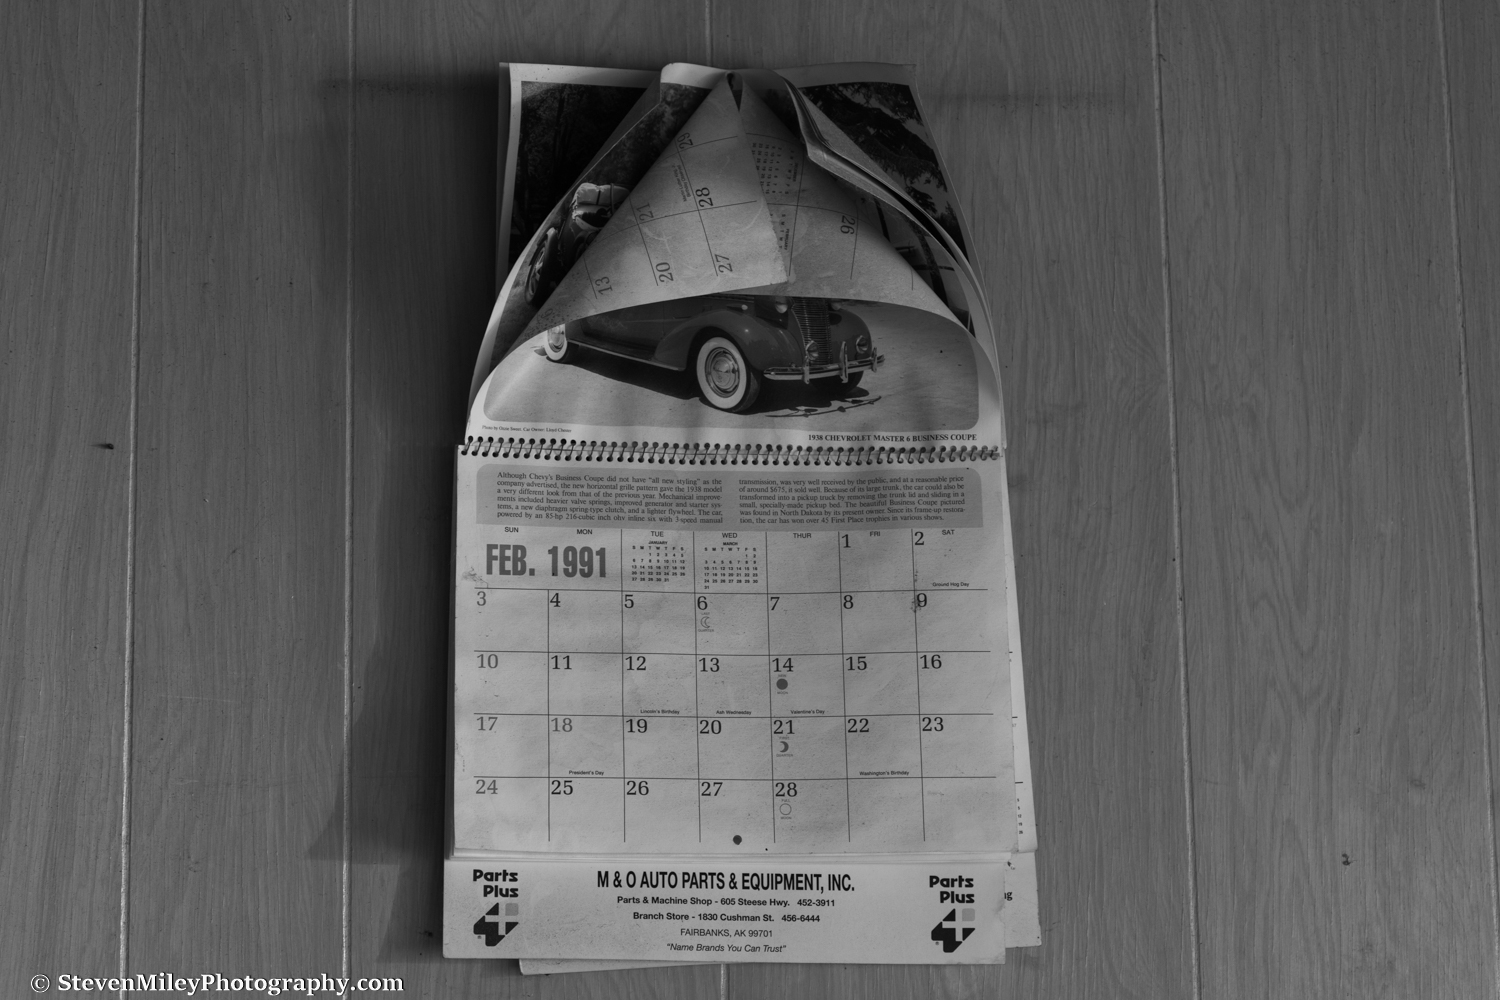 The 1991 calendar still hanging on the wall of the office was my best indication of when the shop last operated. I picked up one of the work orders scattered on the floor and the date entered was 1983. A soiled mattress with blankets in an adjacent room suggests one or more vagrants inhabited the building in the past, but not recently. Another room with a ragged couch and chair may have been a waiting area, but it's now missing a wall and opens directly into the junkyard.